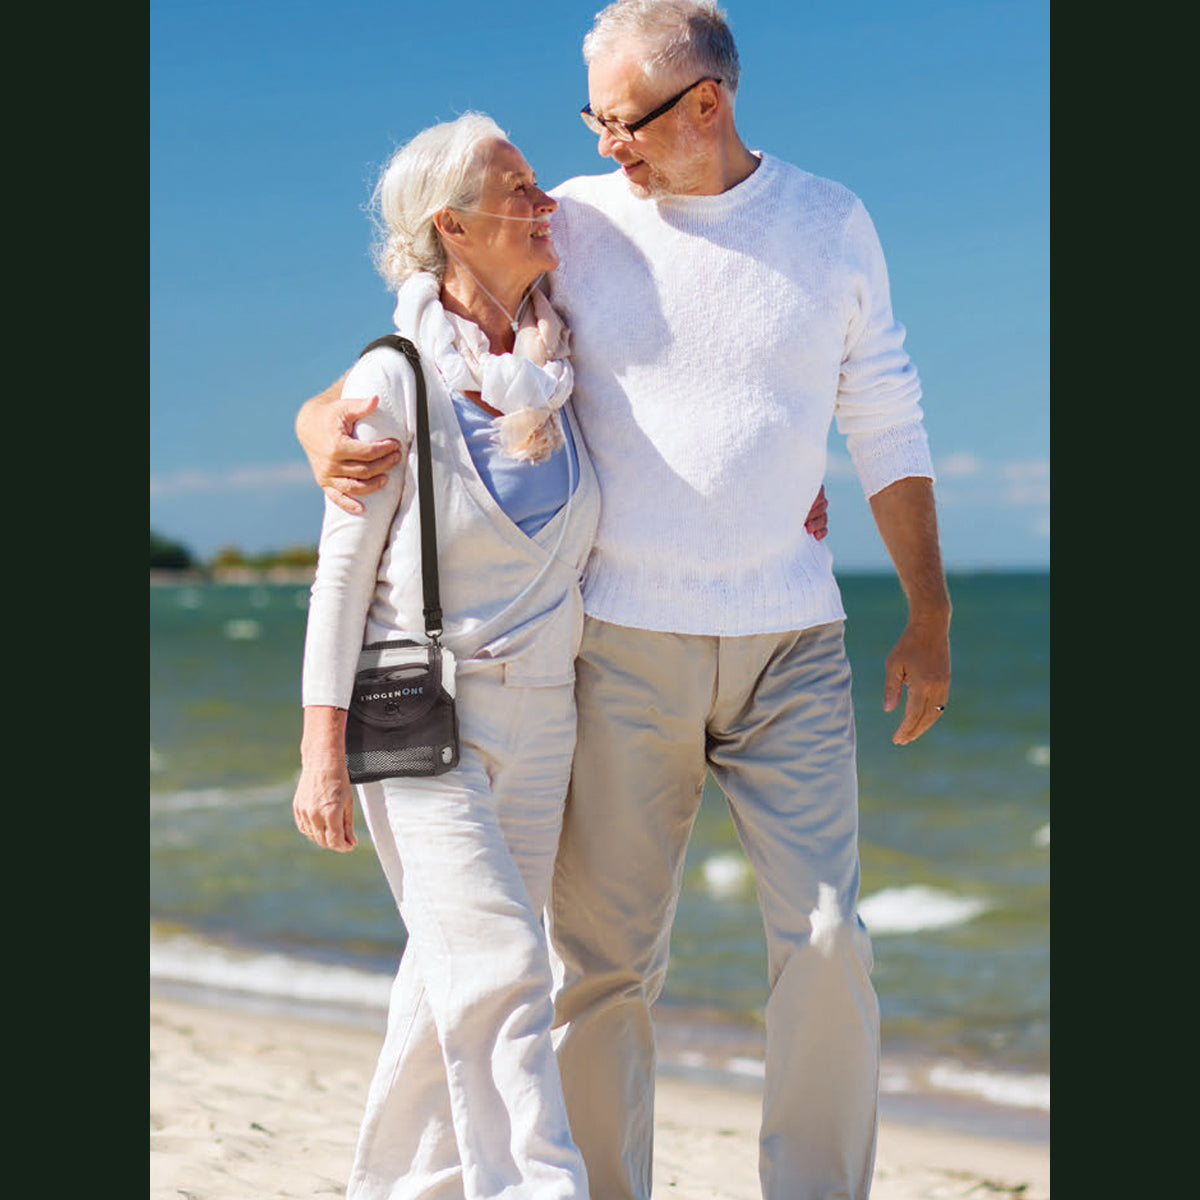 Couple On Beach Using Inogen One G5 Portable Oxygen Concentrator Bundle